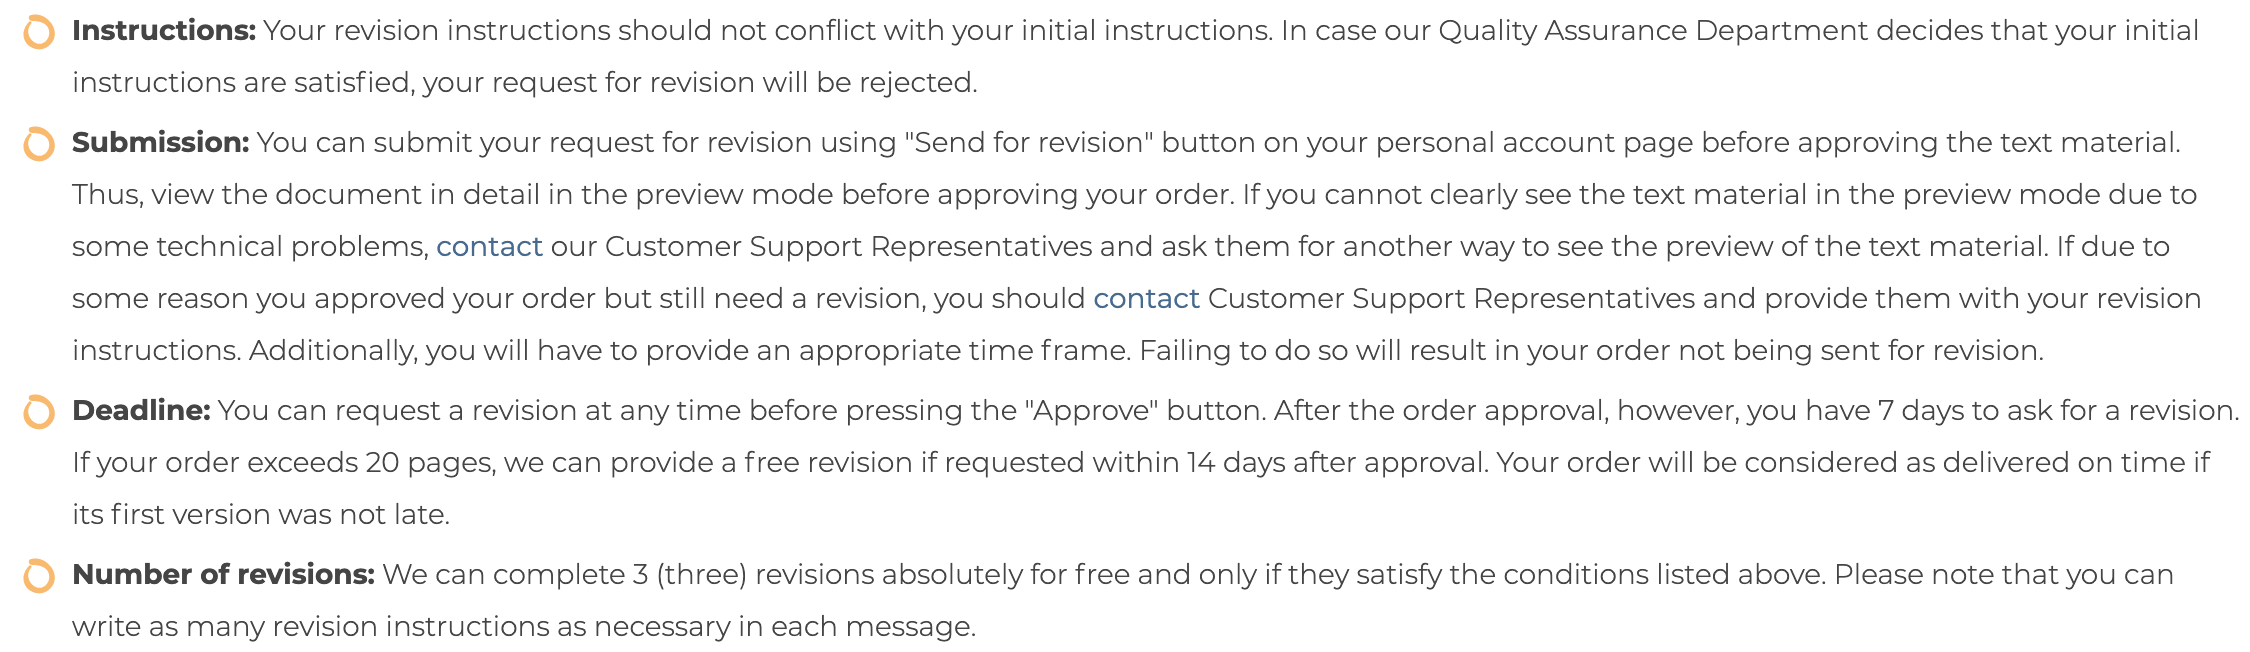 myadmissionsessay.com revision policy